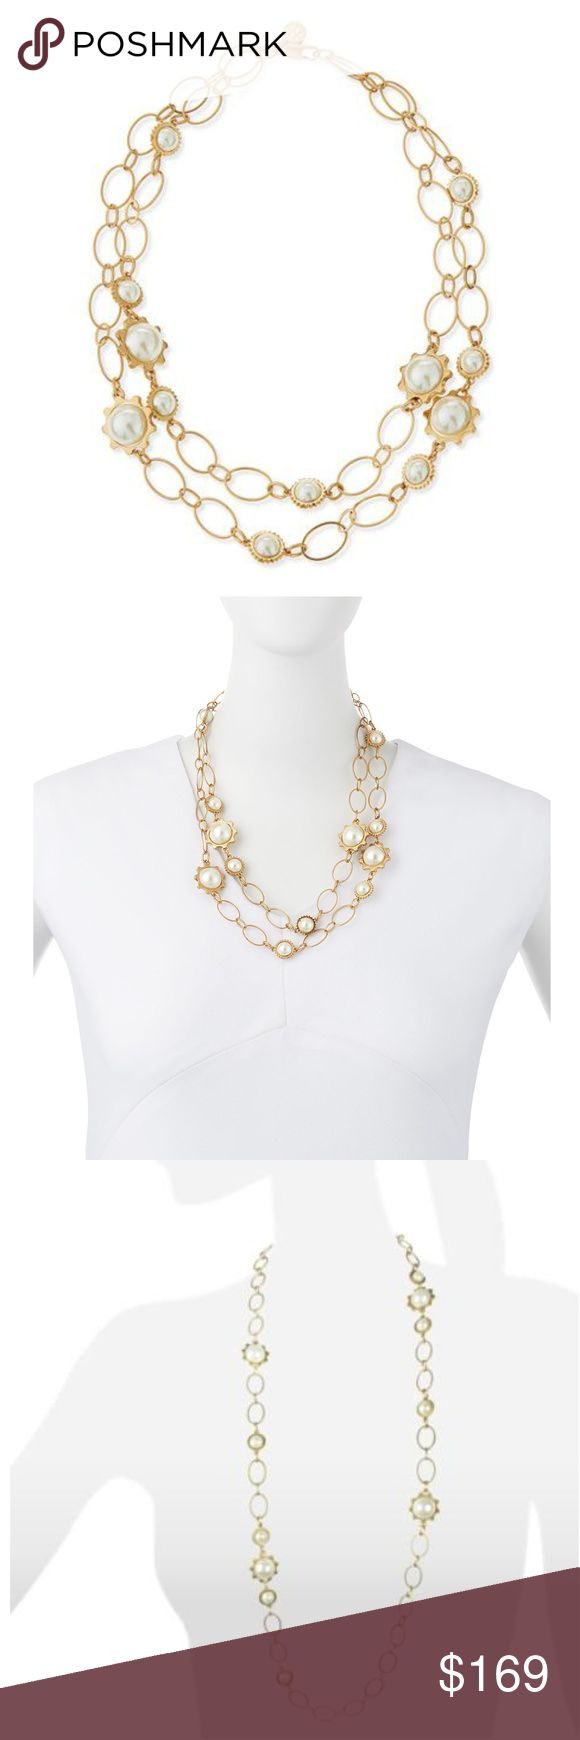 """Tory Burch Gear Pearl Convertible Station Necklace """"Creamy simulated pearls in an array of notched gear settings create a fun industrial look, spaced along a graceful 16k gold-plated chain that can be clasped in double-row style or slipped over the head to wear long and loose.""""   Simulated faux pearl. Glass.  16k yellow gold-plated brass with antiqued finish  Length, 41"""" (single strand) or  20.5"""" (double strand). Retail $250 RARE to find  NEW without tags. Tory Burch Jewelry Necklaces"""